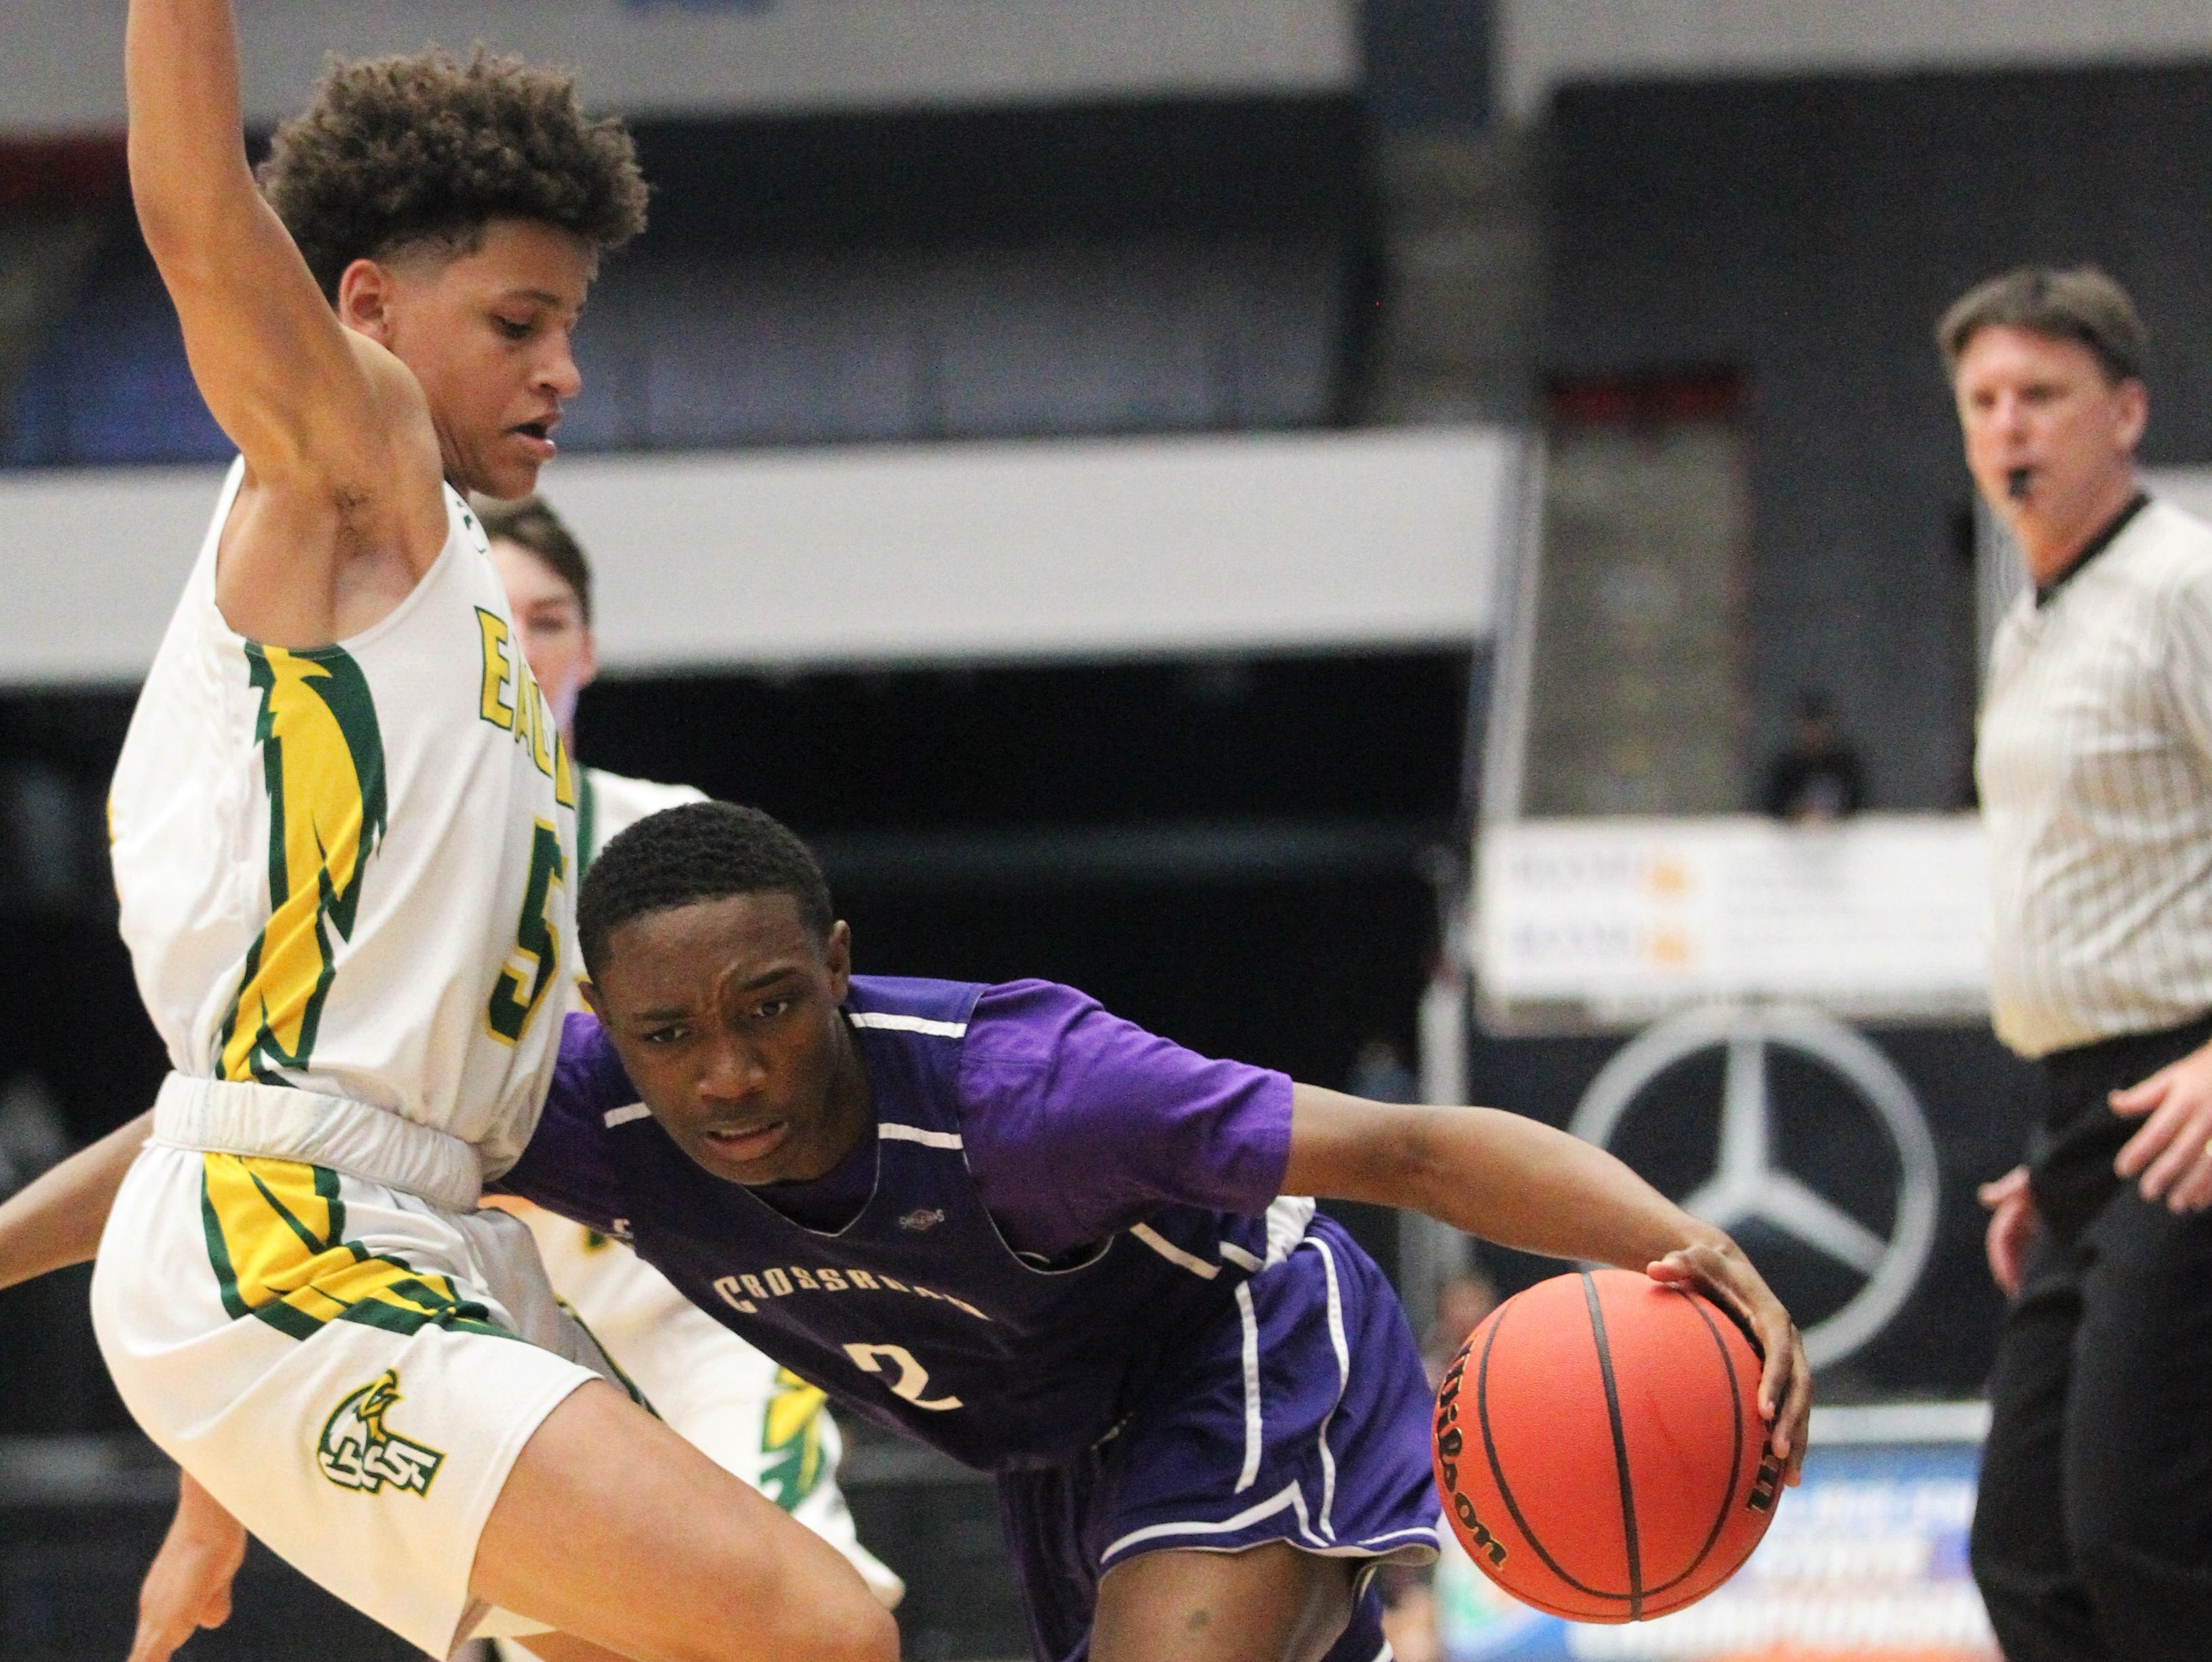 Crossroad Academy guard Jeremiah Outley tries to get past a defender as the Scorpions played Central Florida Christian Academy during a Class 2A state semifinal at the RP Funding Center in Lakeland on March 4, 2019.